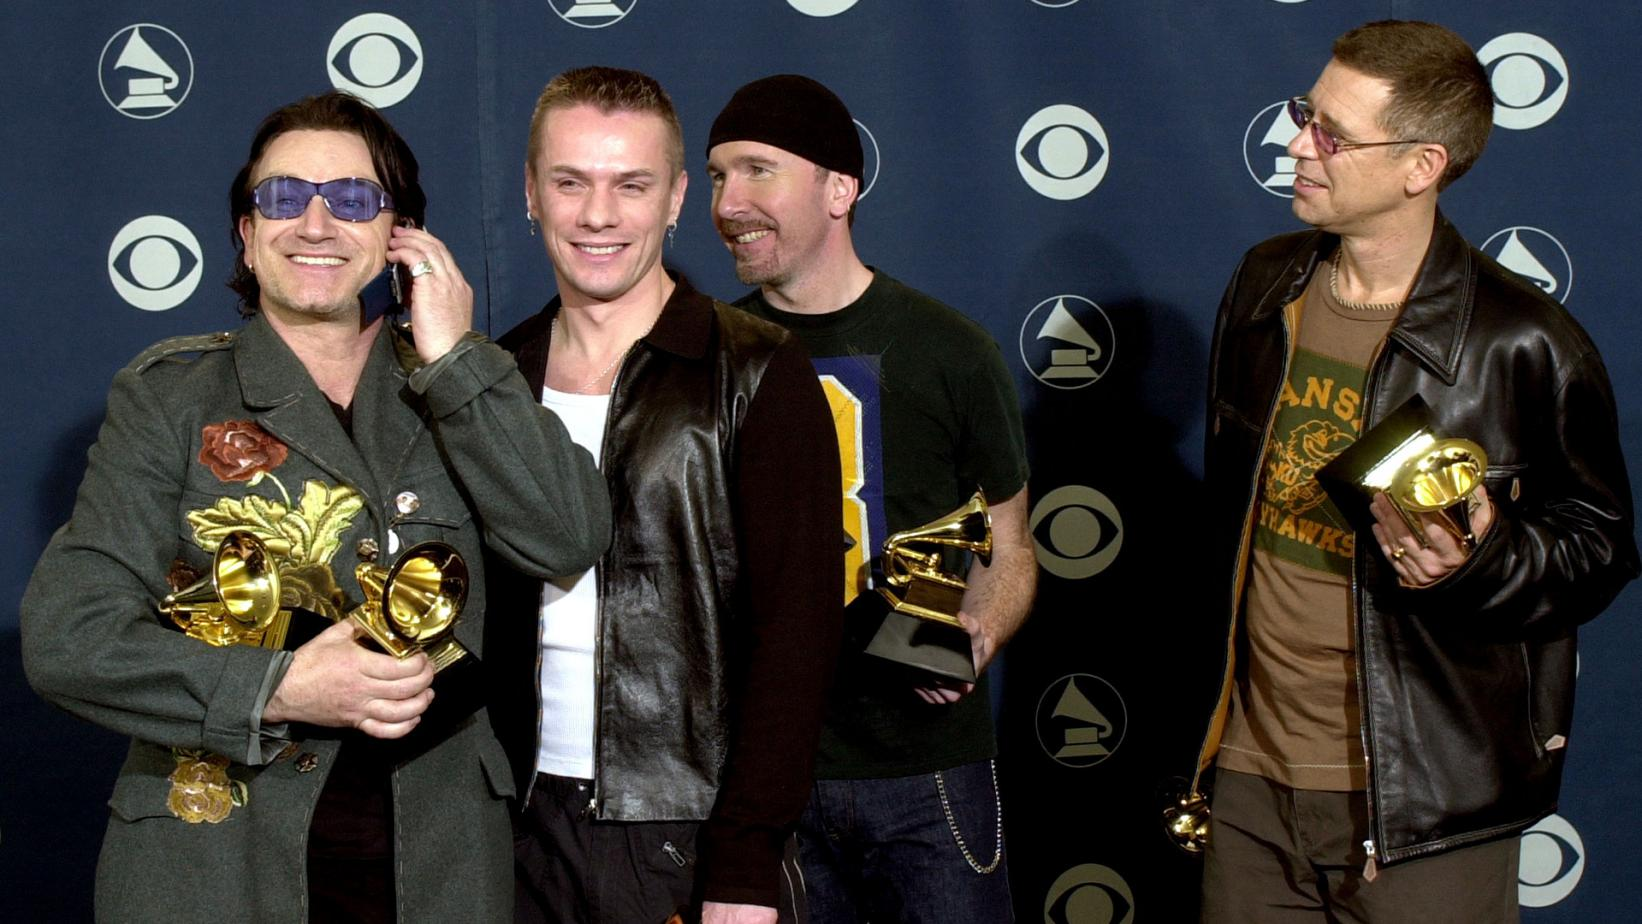 U2 pose with GRAMMYs backstage at the 43rd GRAMMY Awards in 2001